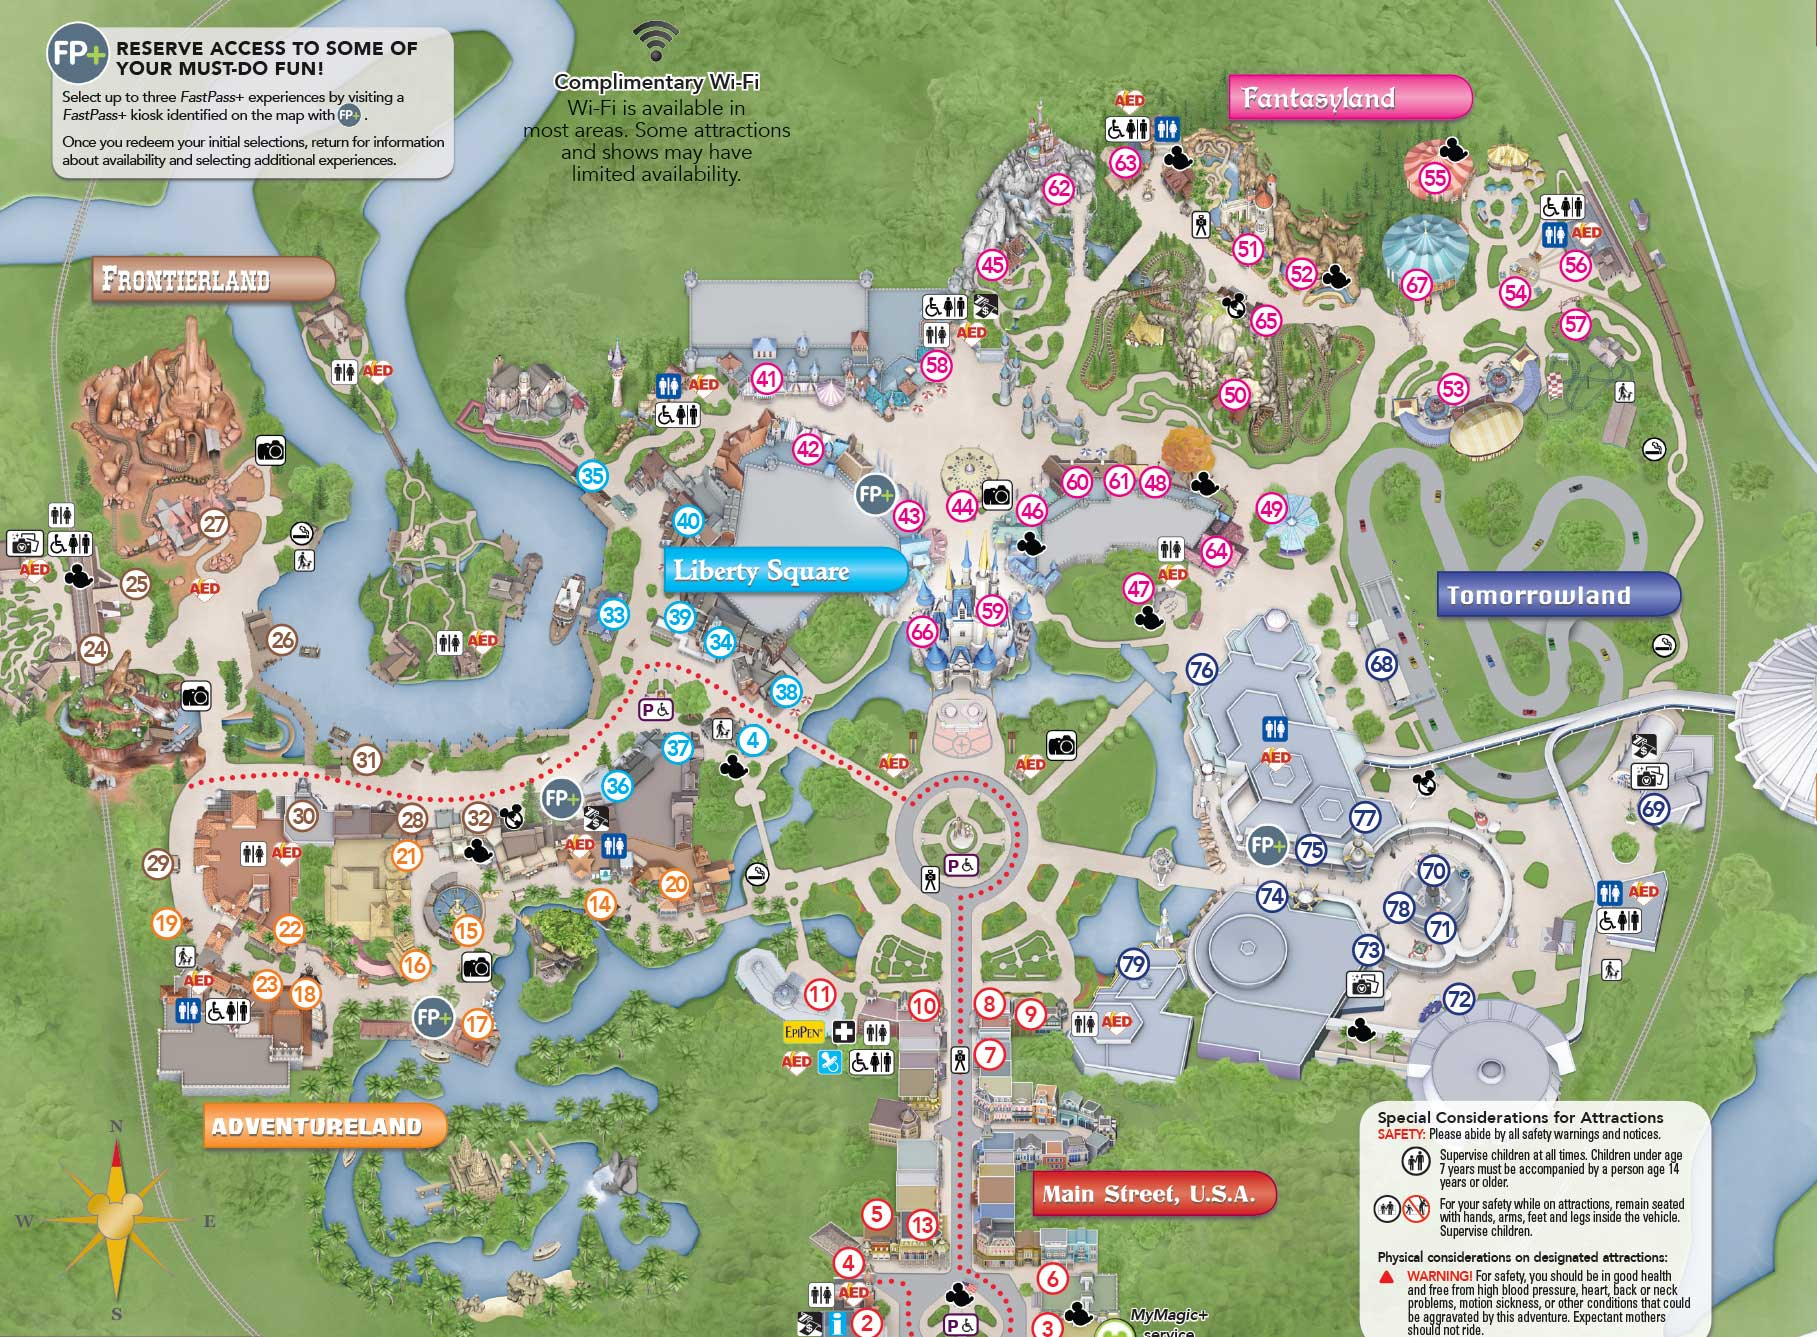 New Magic Kingdom guide map shows new Plaza Gardens - Photo 2 of 2